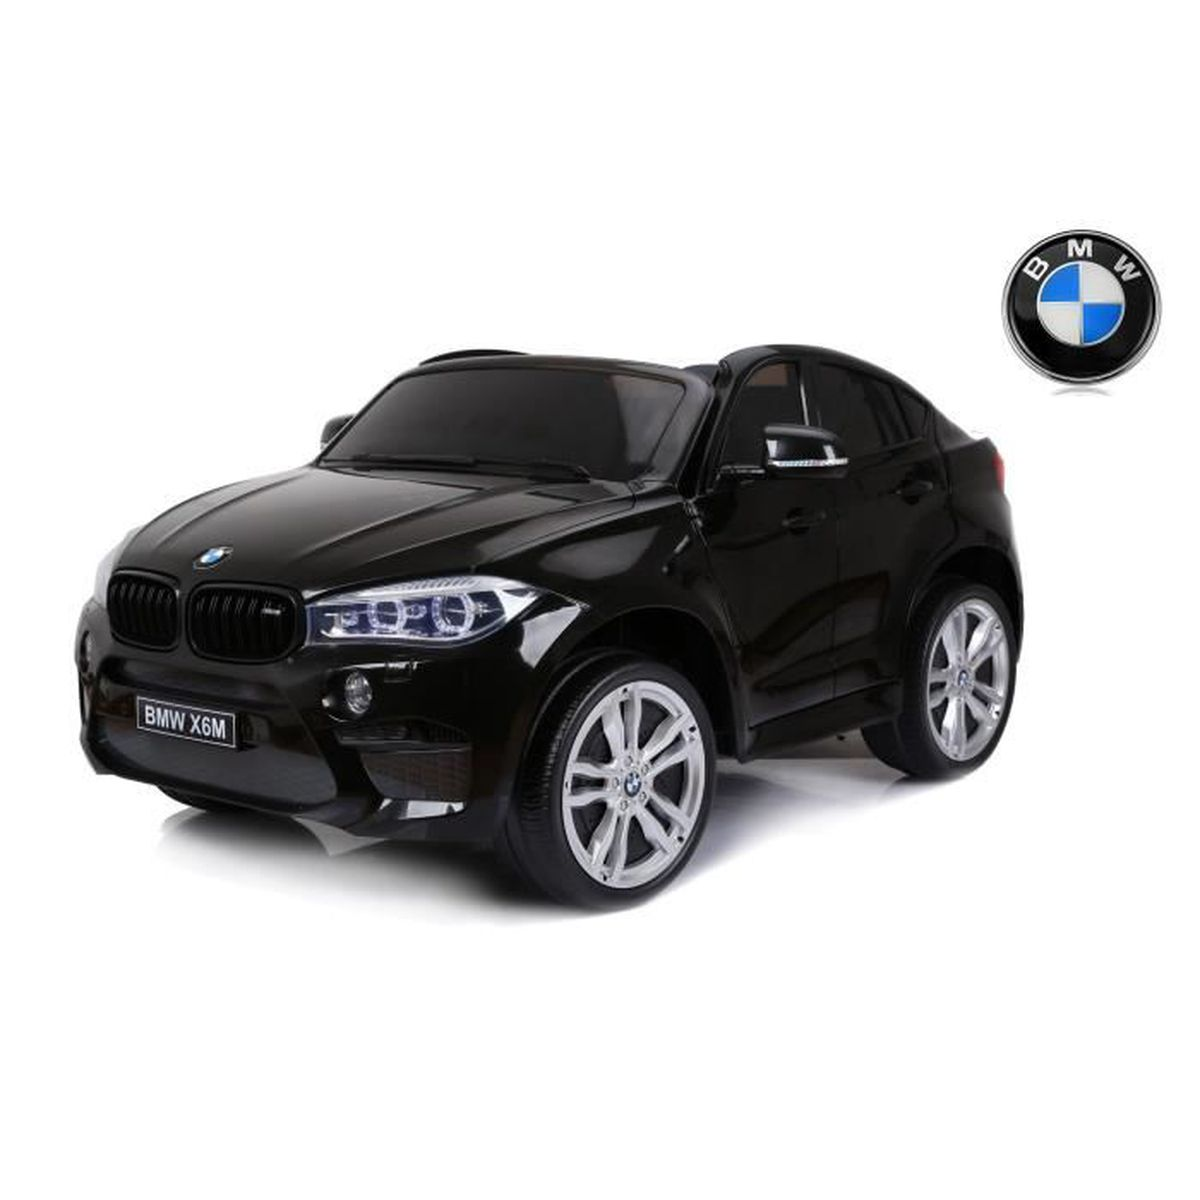 bmw x6 noir achat vente pas cher. Black Bedroom Furniture Sets. Home Design Ideas